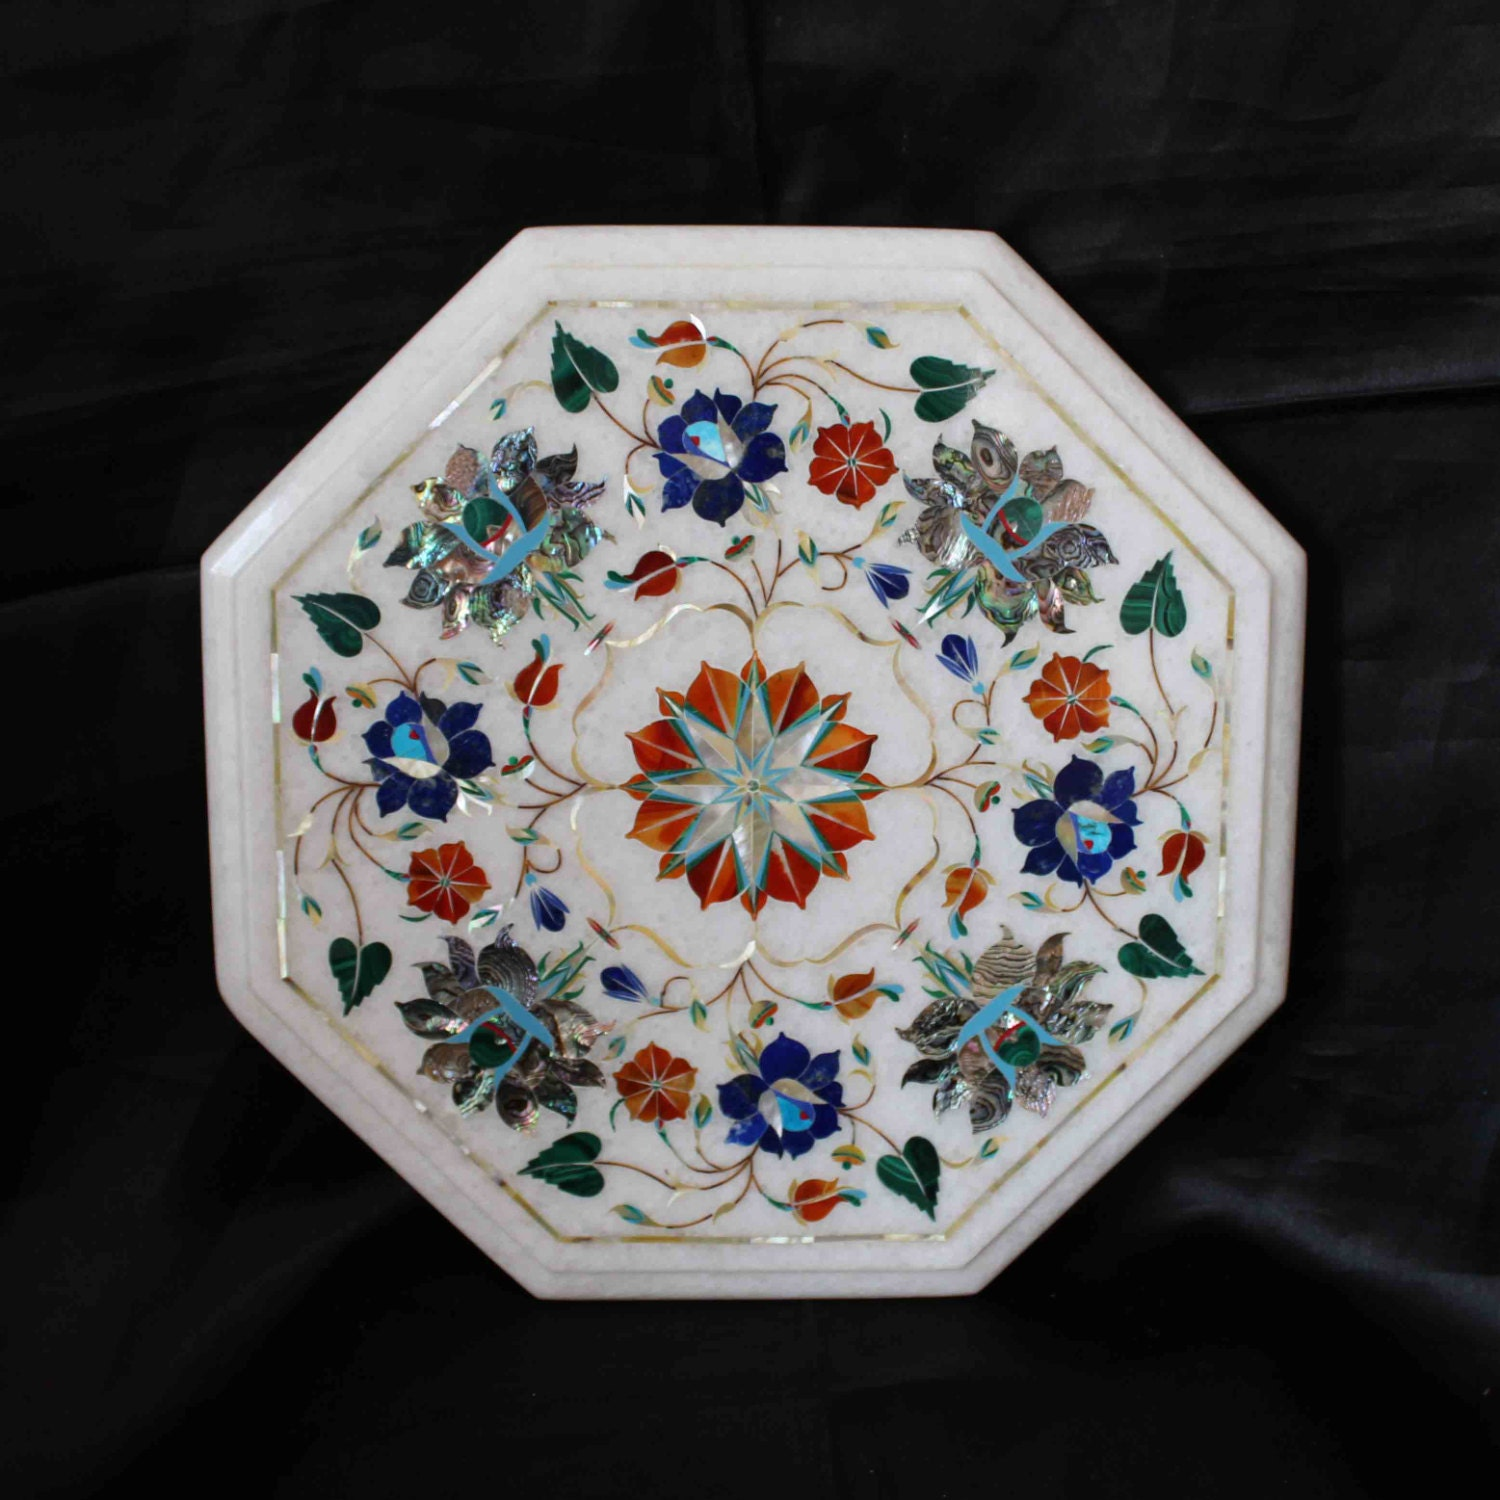 Antique White Marble Coffee Table: Coffee Table Top White Marble Antique Italian Inlay Floral